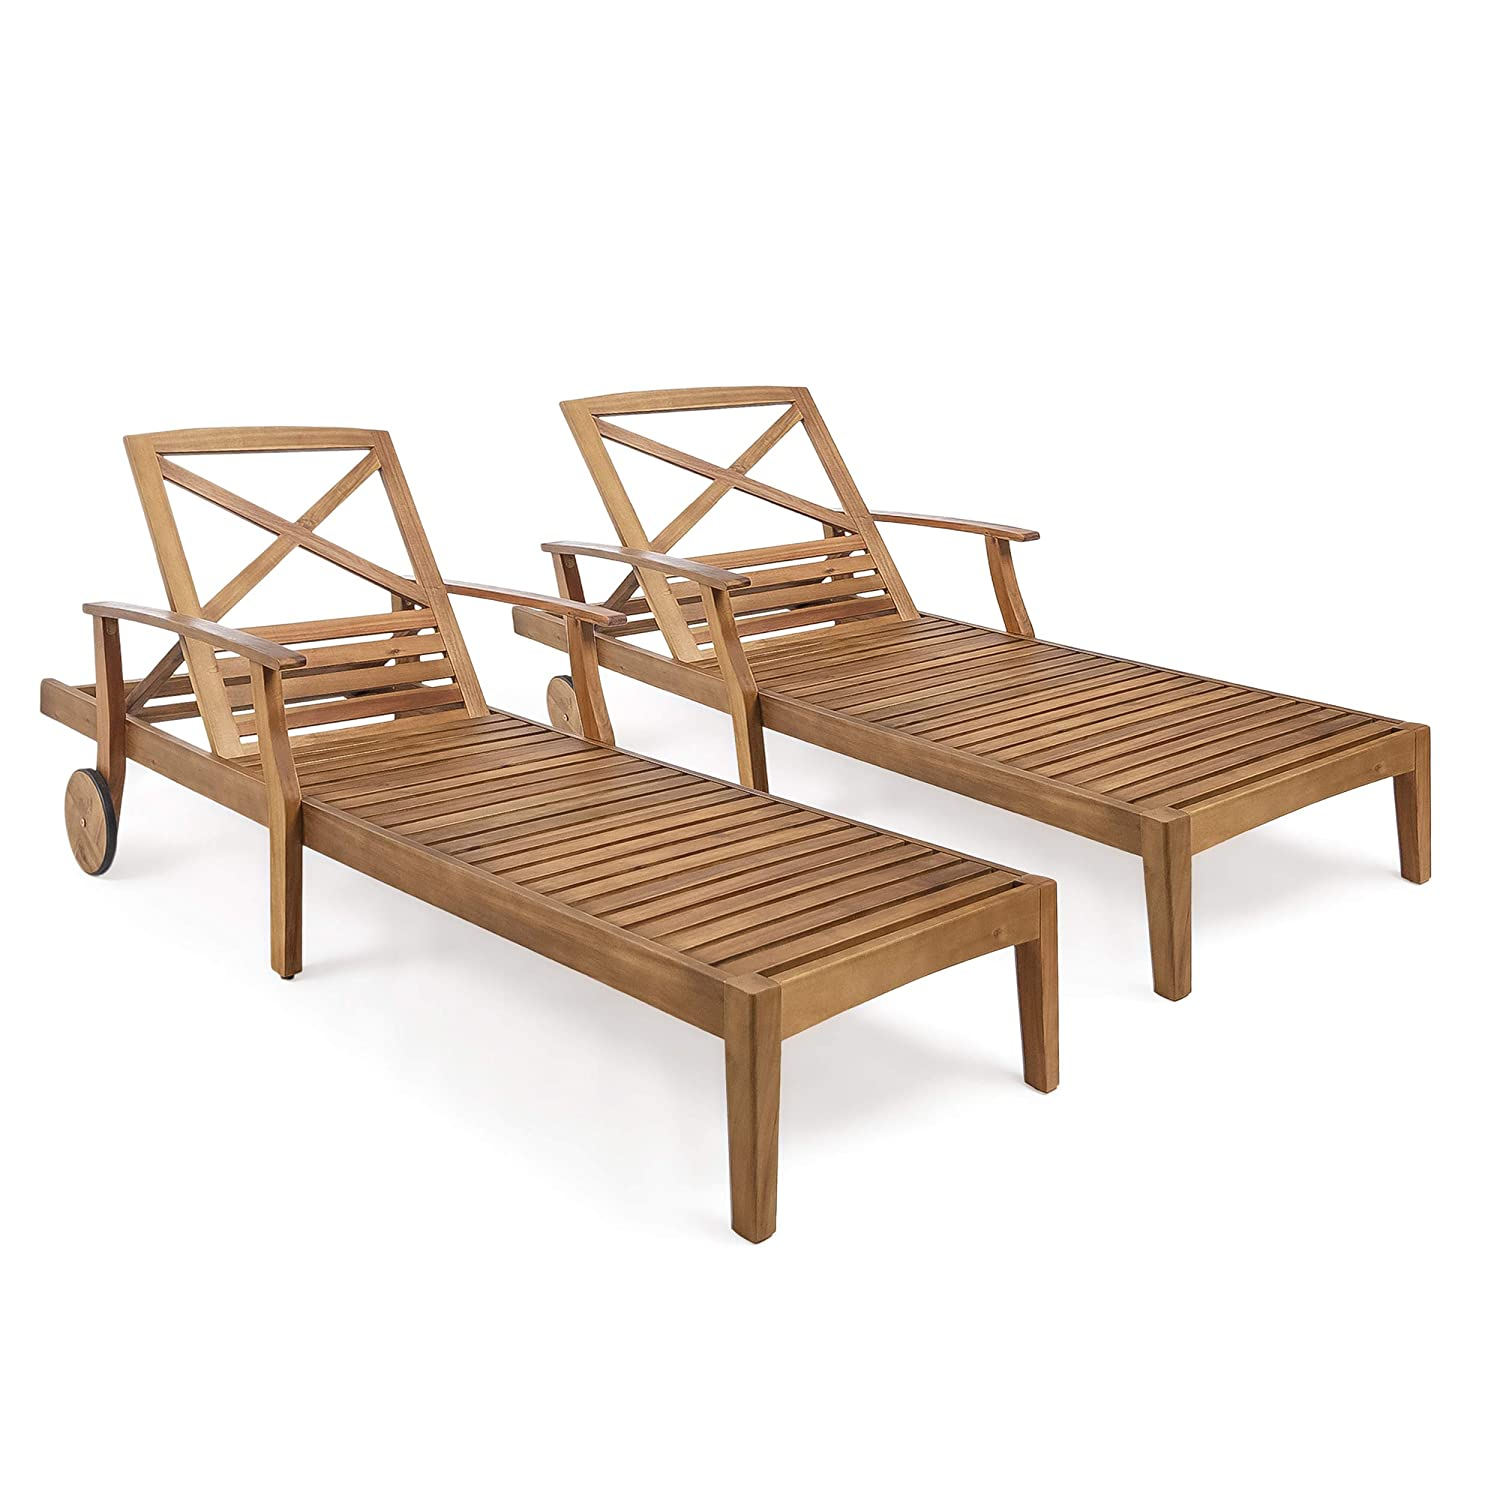 Great Deal Furniture Thalia Outdoor Teak Finished Acacia Wood Chaise Lounge Set of 2